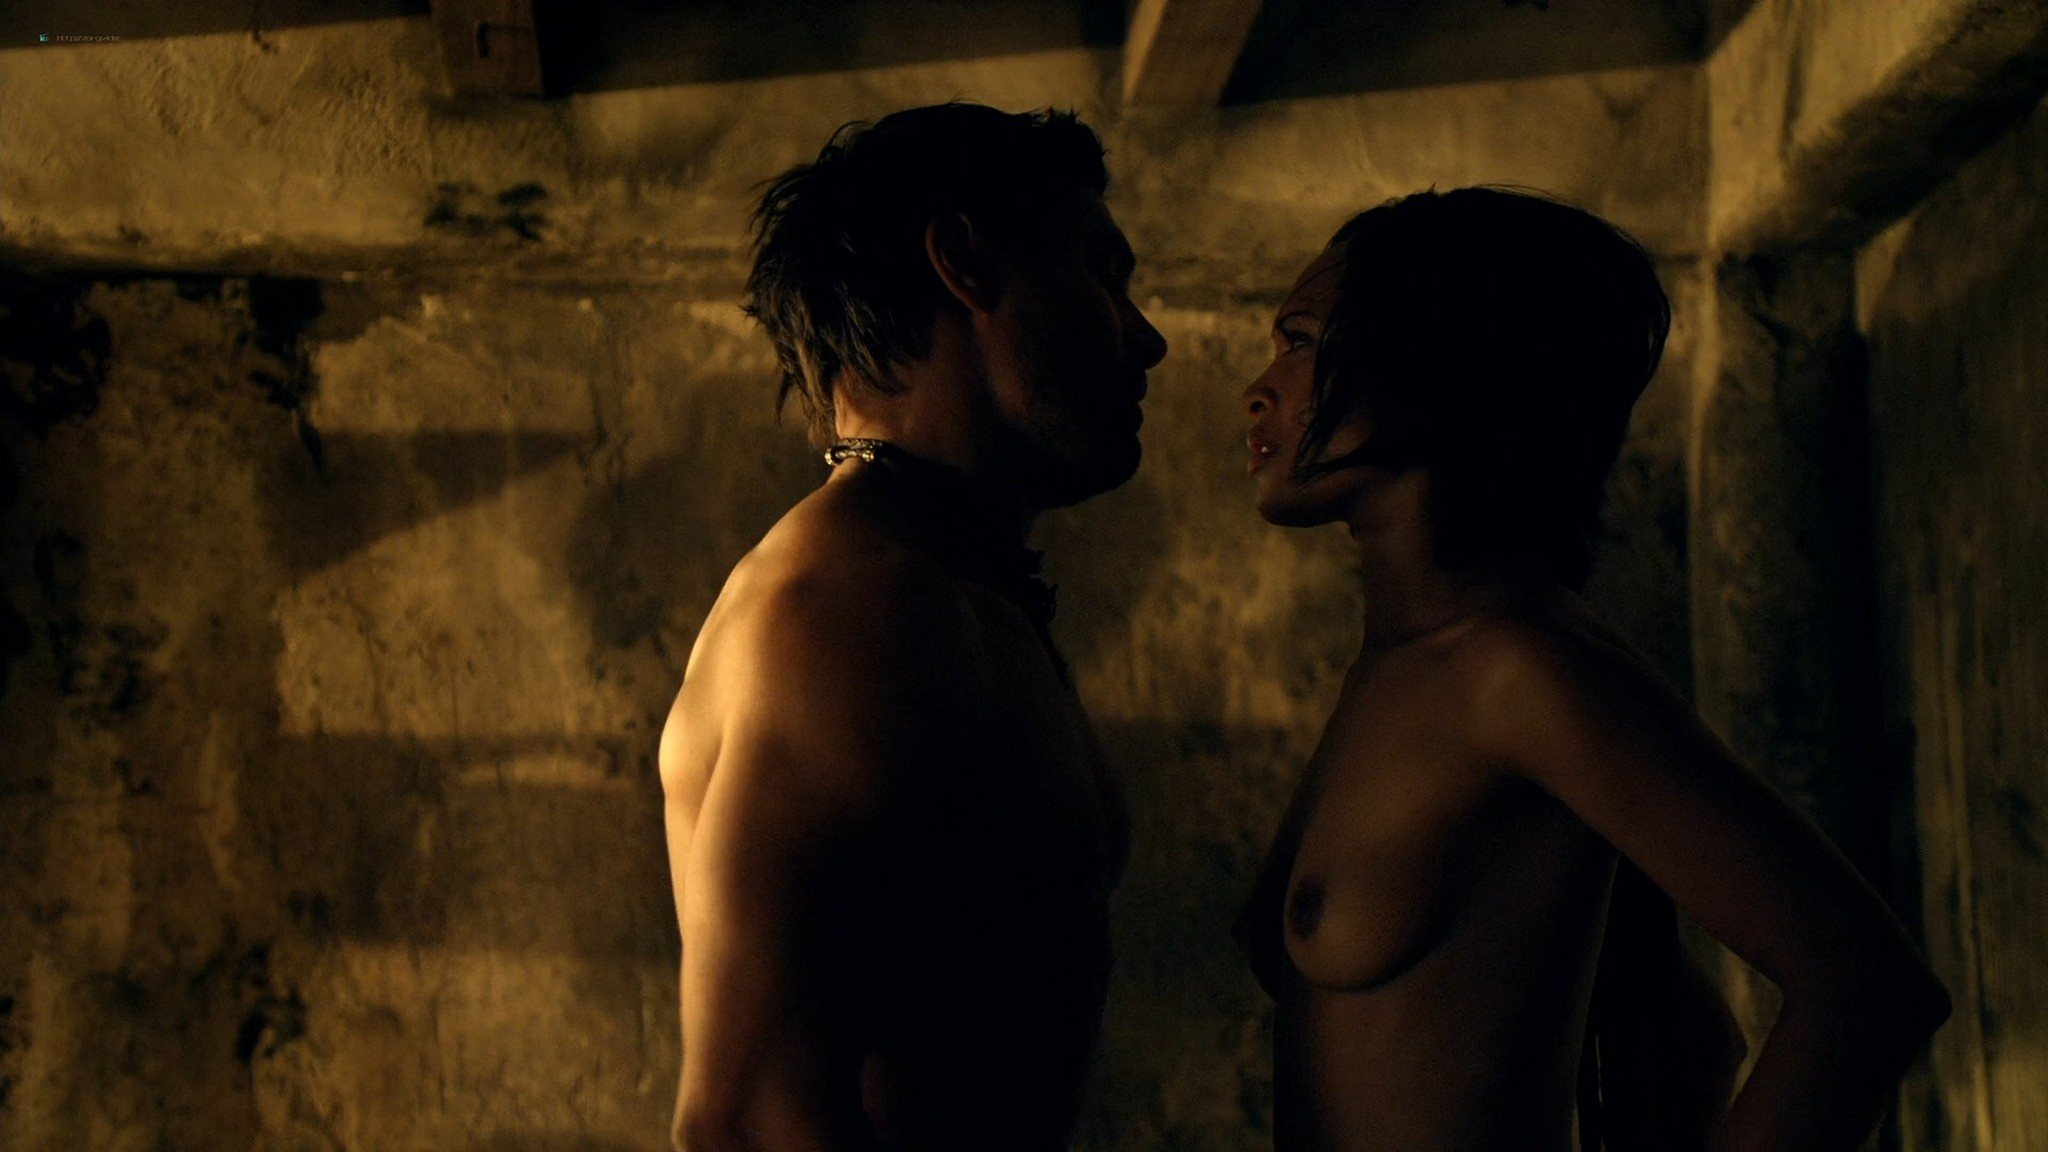 Hanna Mangan Lawrence nude sex Cynthia Addai Robinson and others nude Spartacus vengeance 2012 s2e8 9 HD 1080p BluRay 014